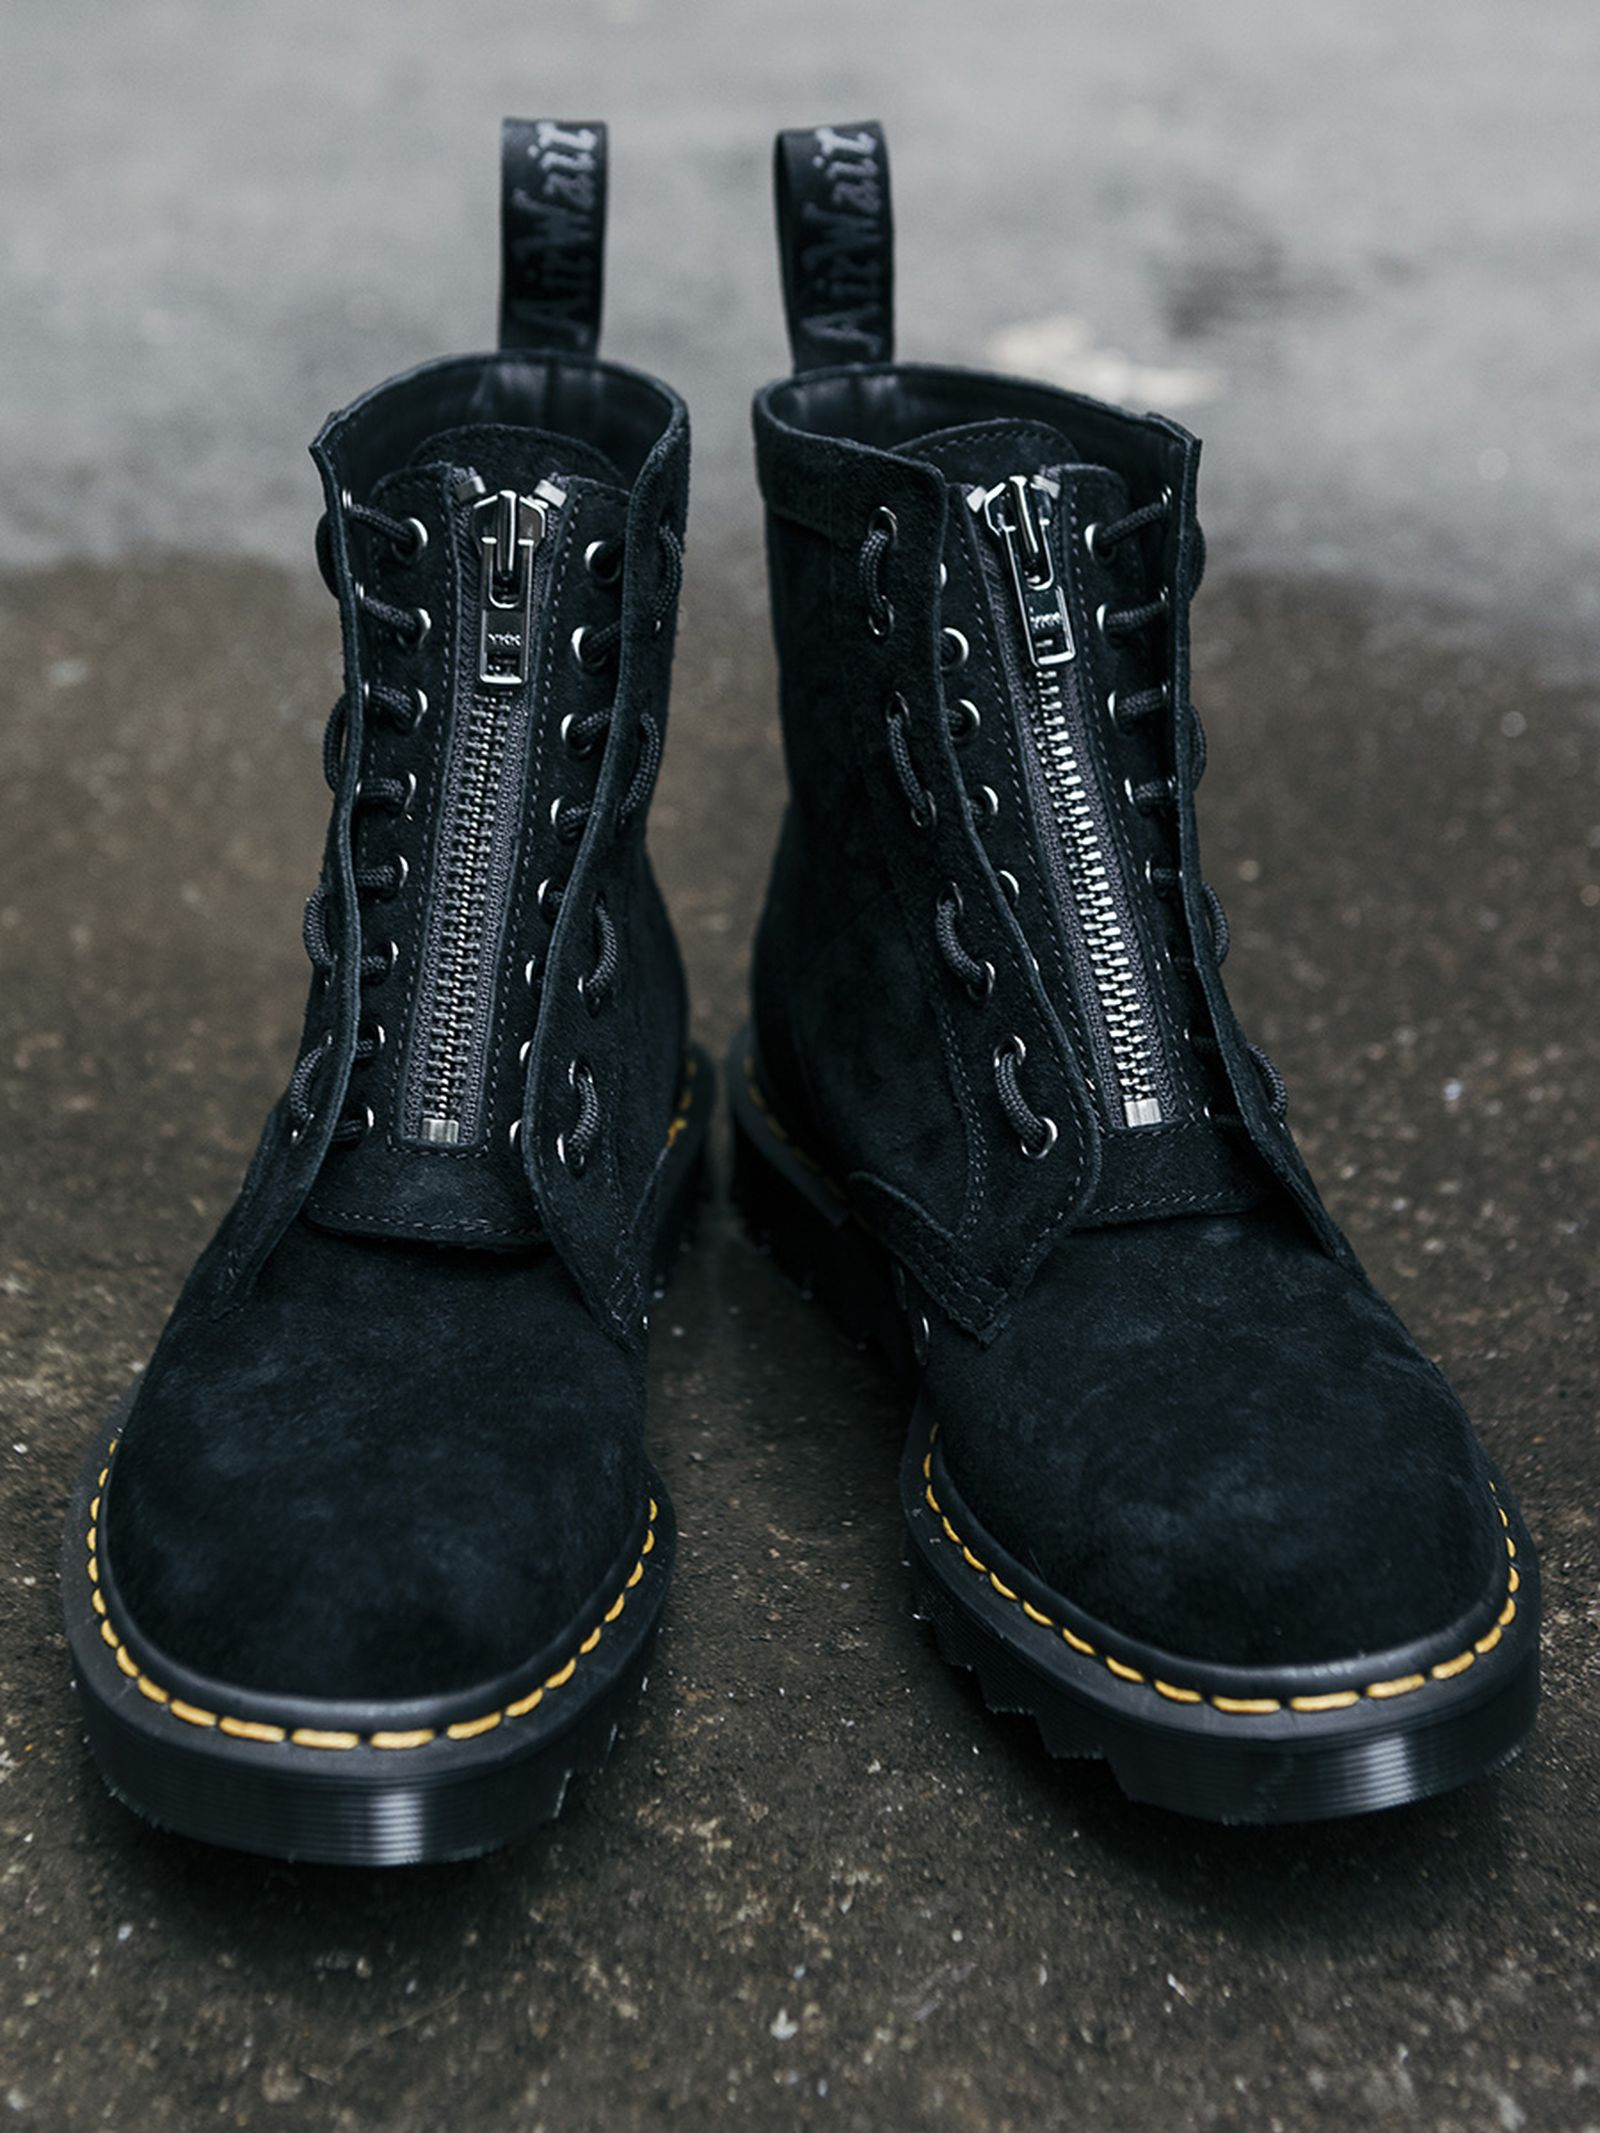 HAVEN x Dr. Martens 1460 boot